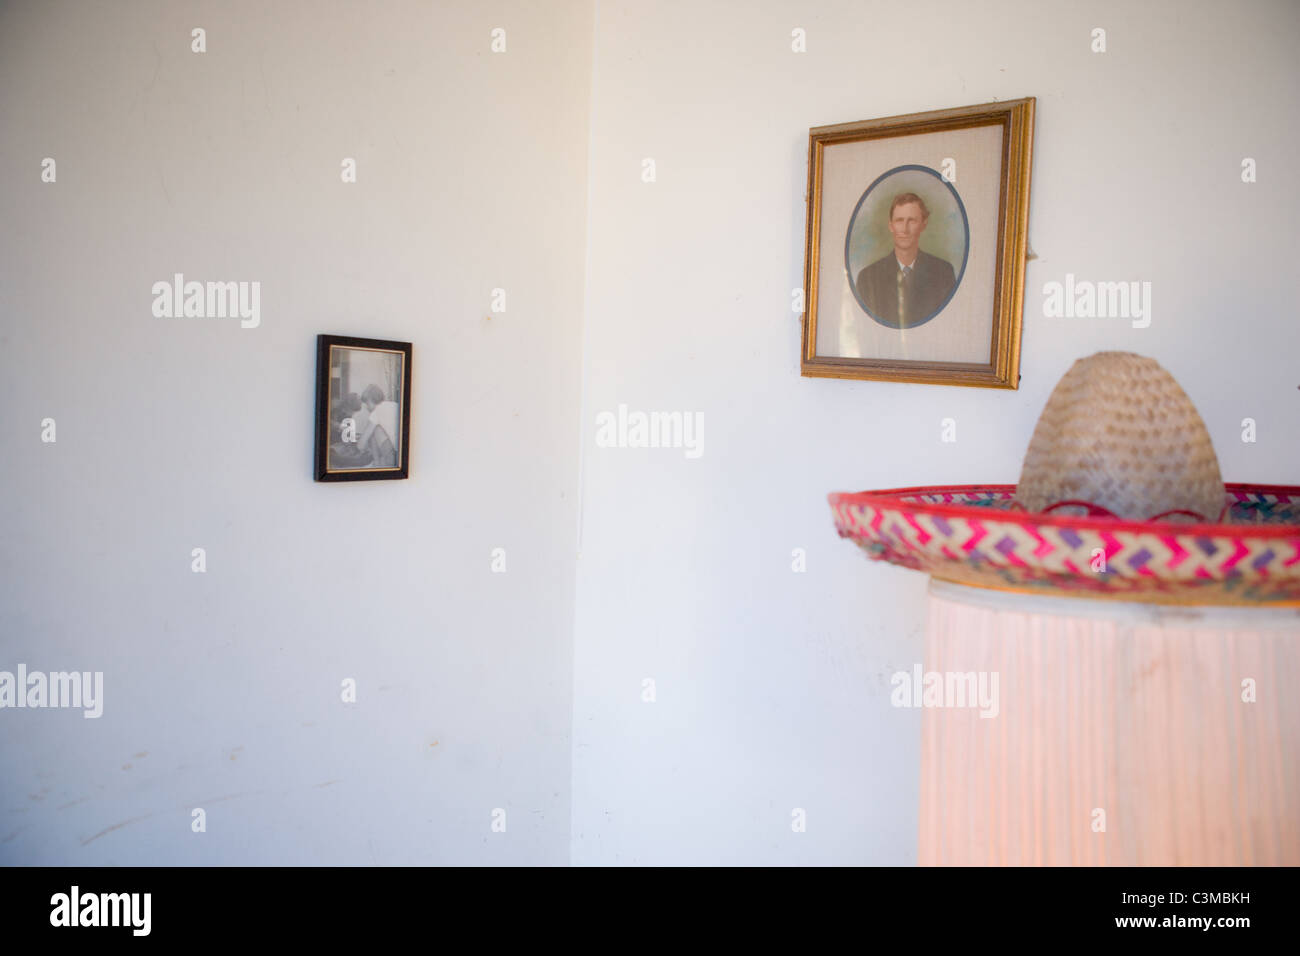 Living room with two old family portraits on the walls, and a sombrero. - Stock Image